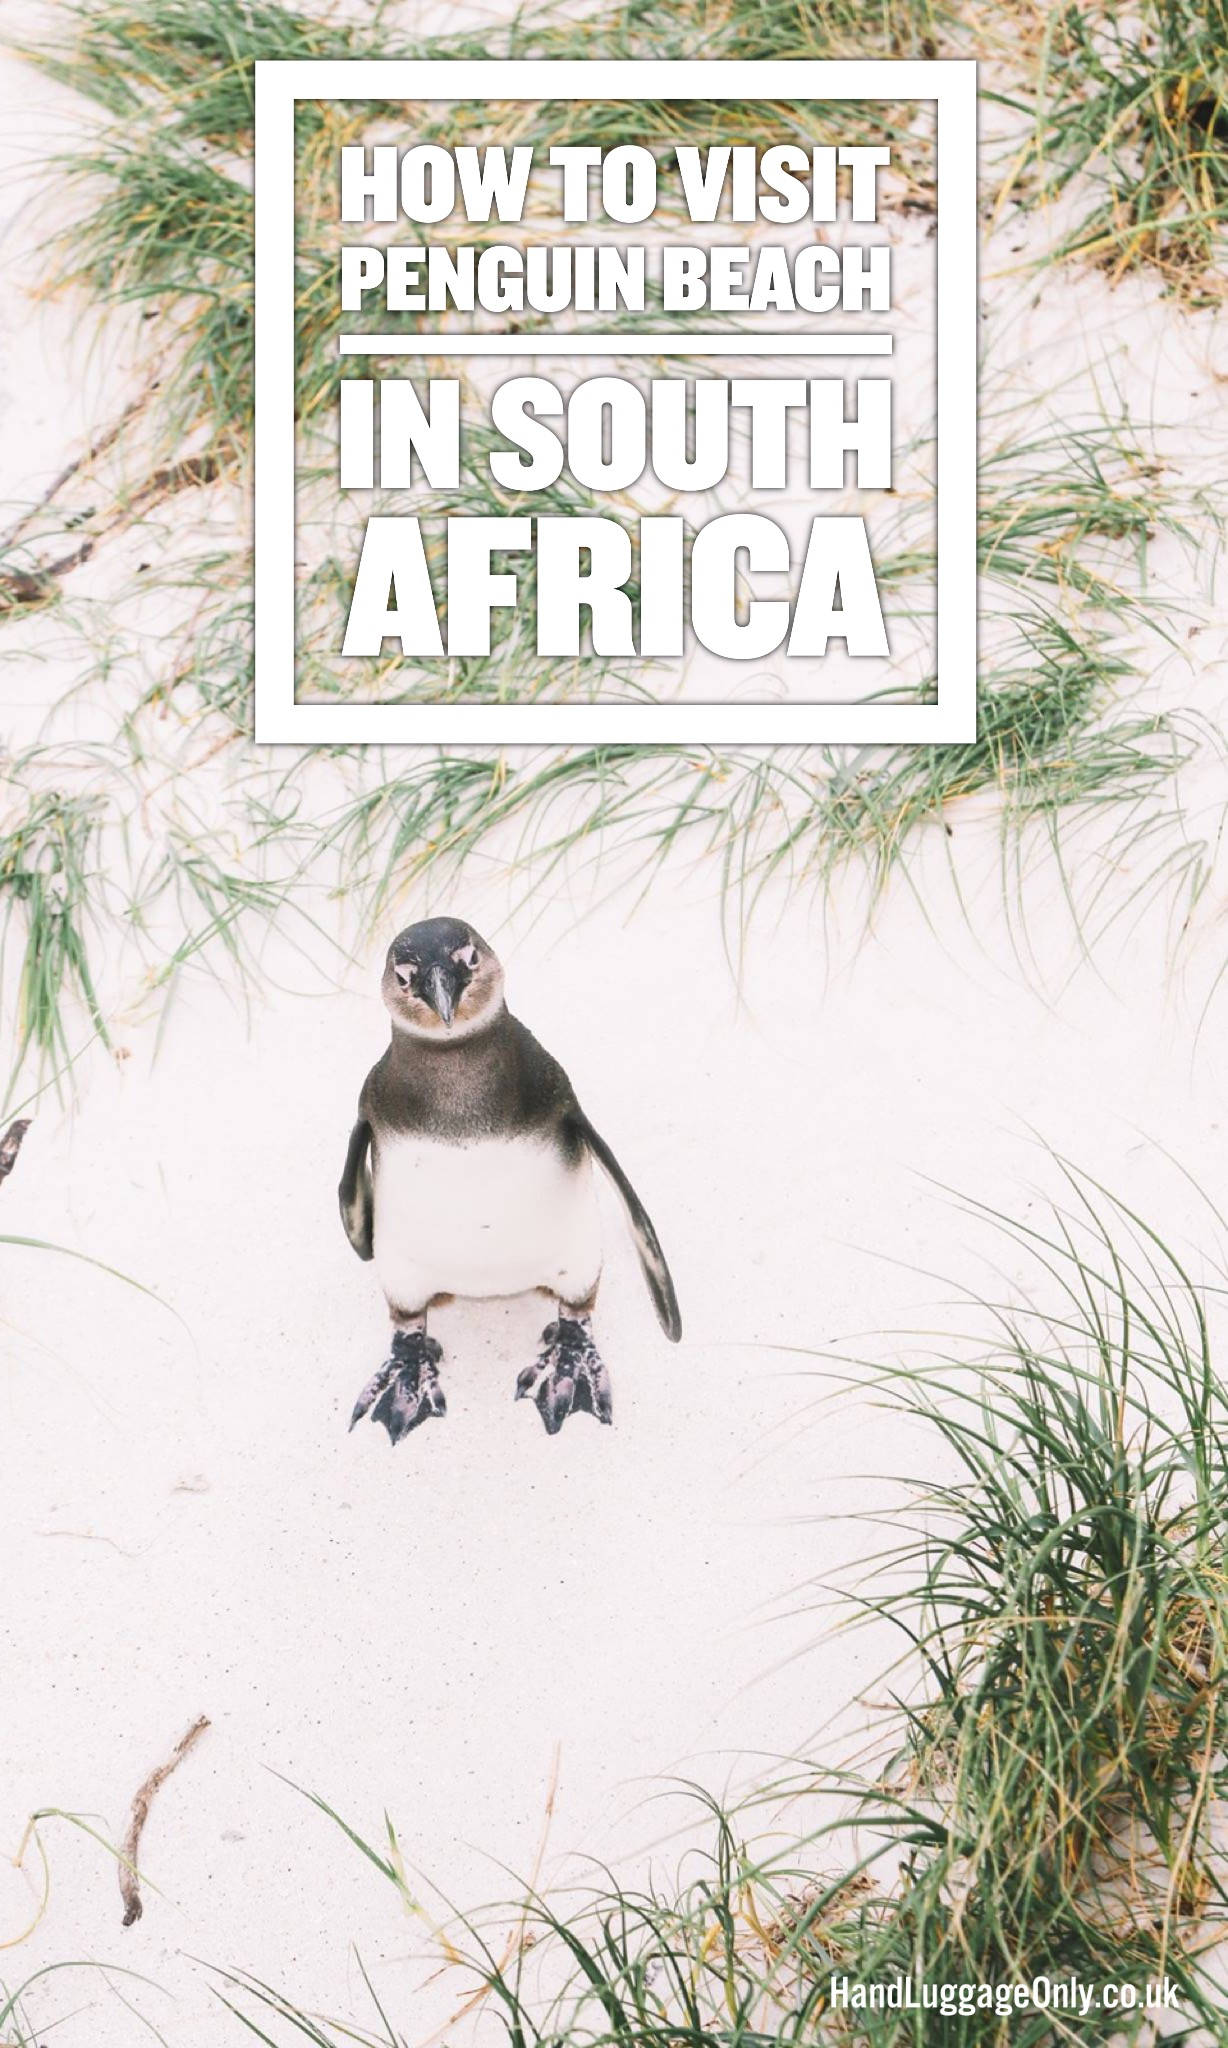 How To Visit Penguin Beach In South Africa